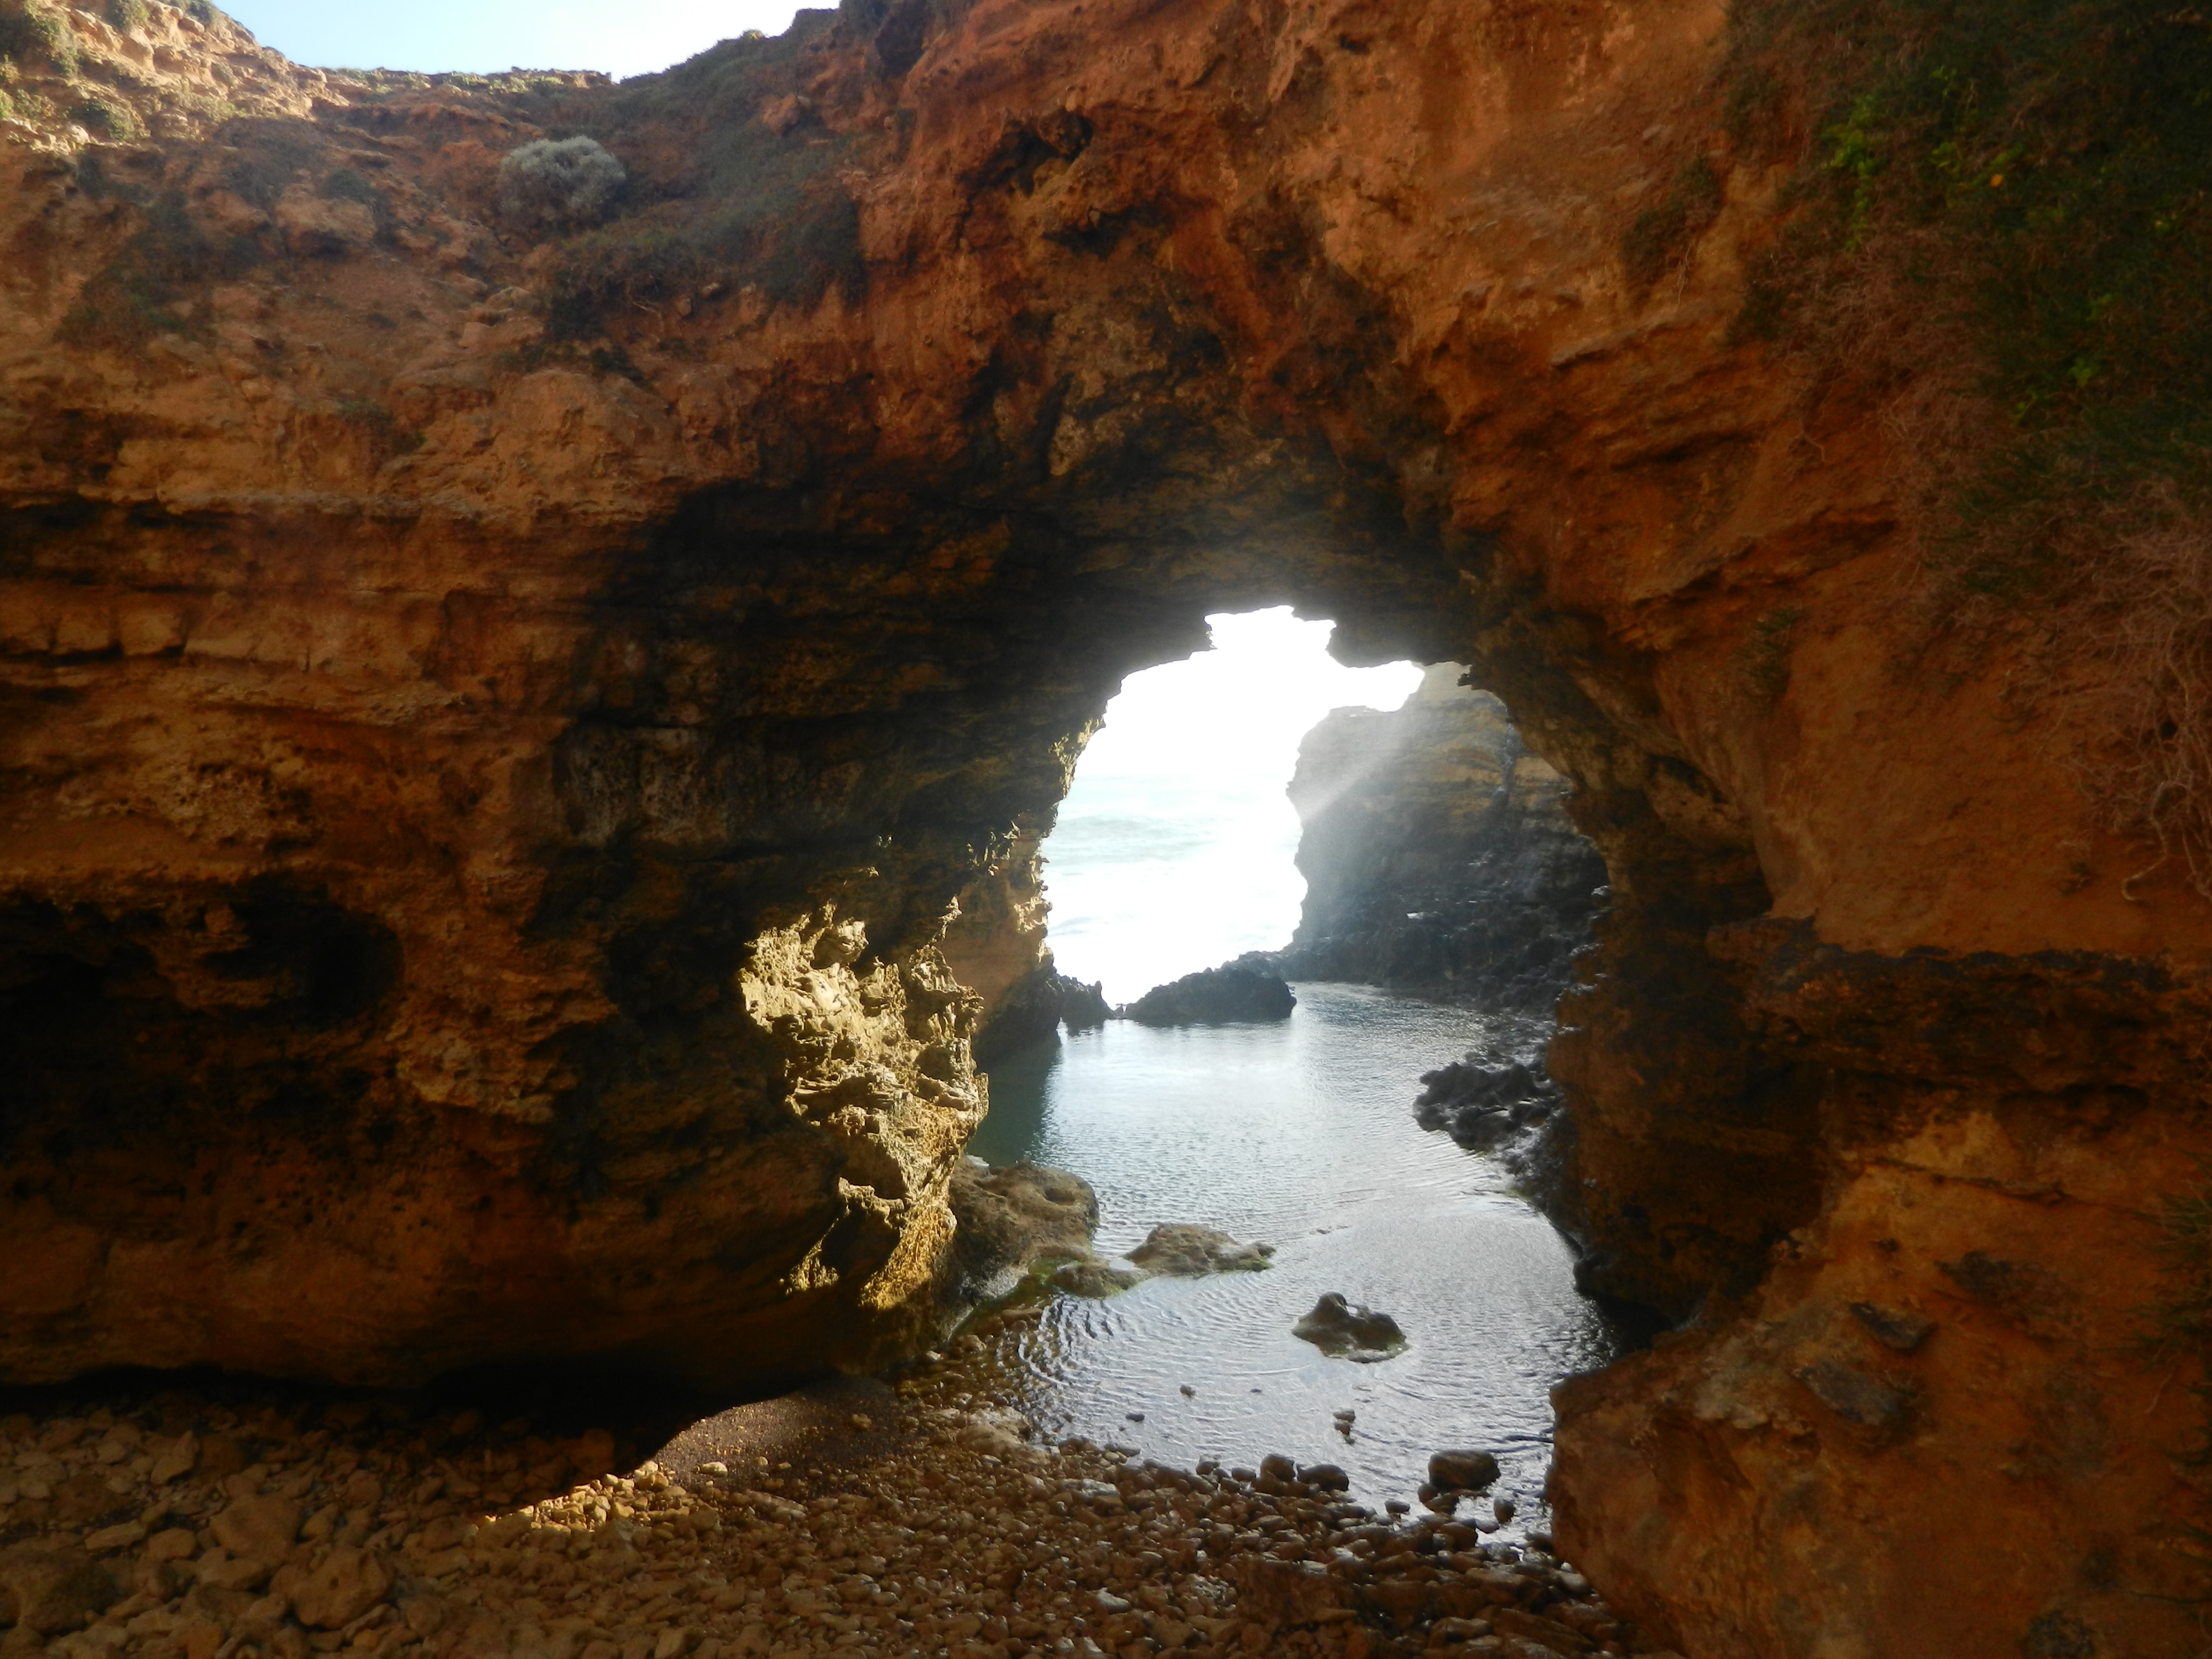 Yellow-orange colored sea arch with ocean water sitting just below.